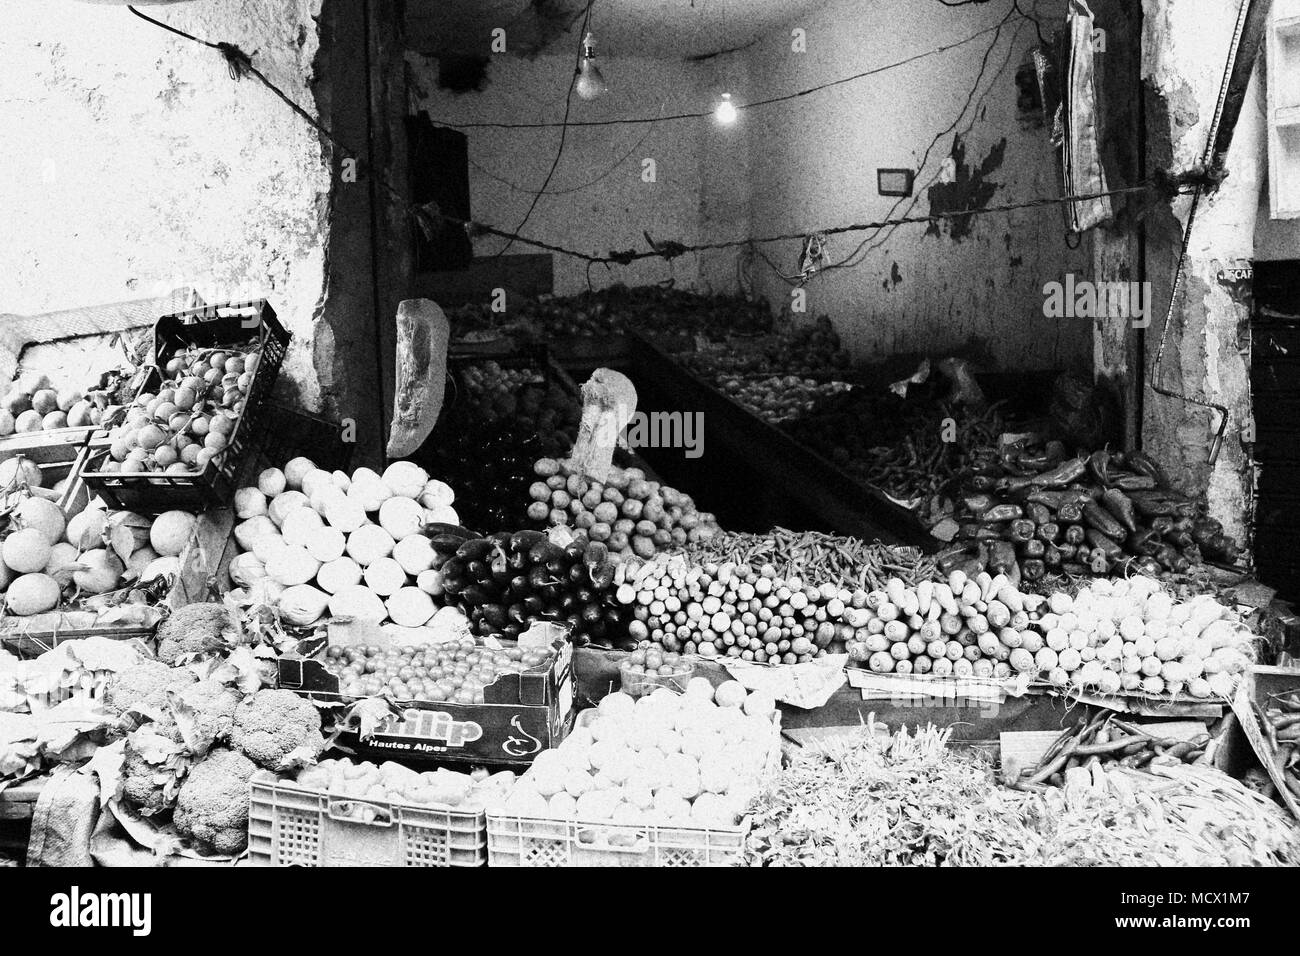 d9156f0a4d88 Moroccan Food Black and White Stock Photos & Images - Alamy